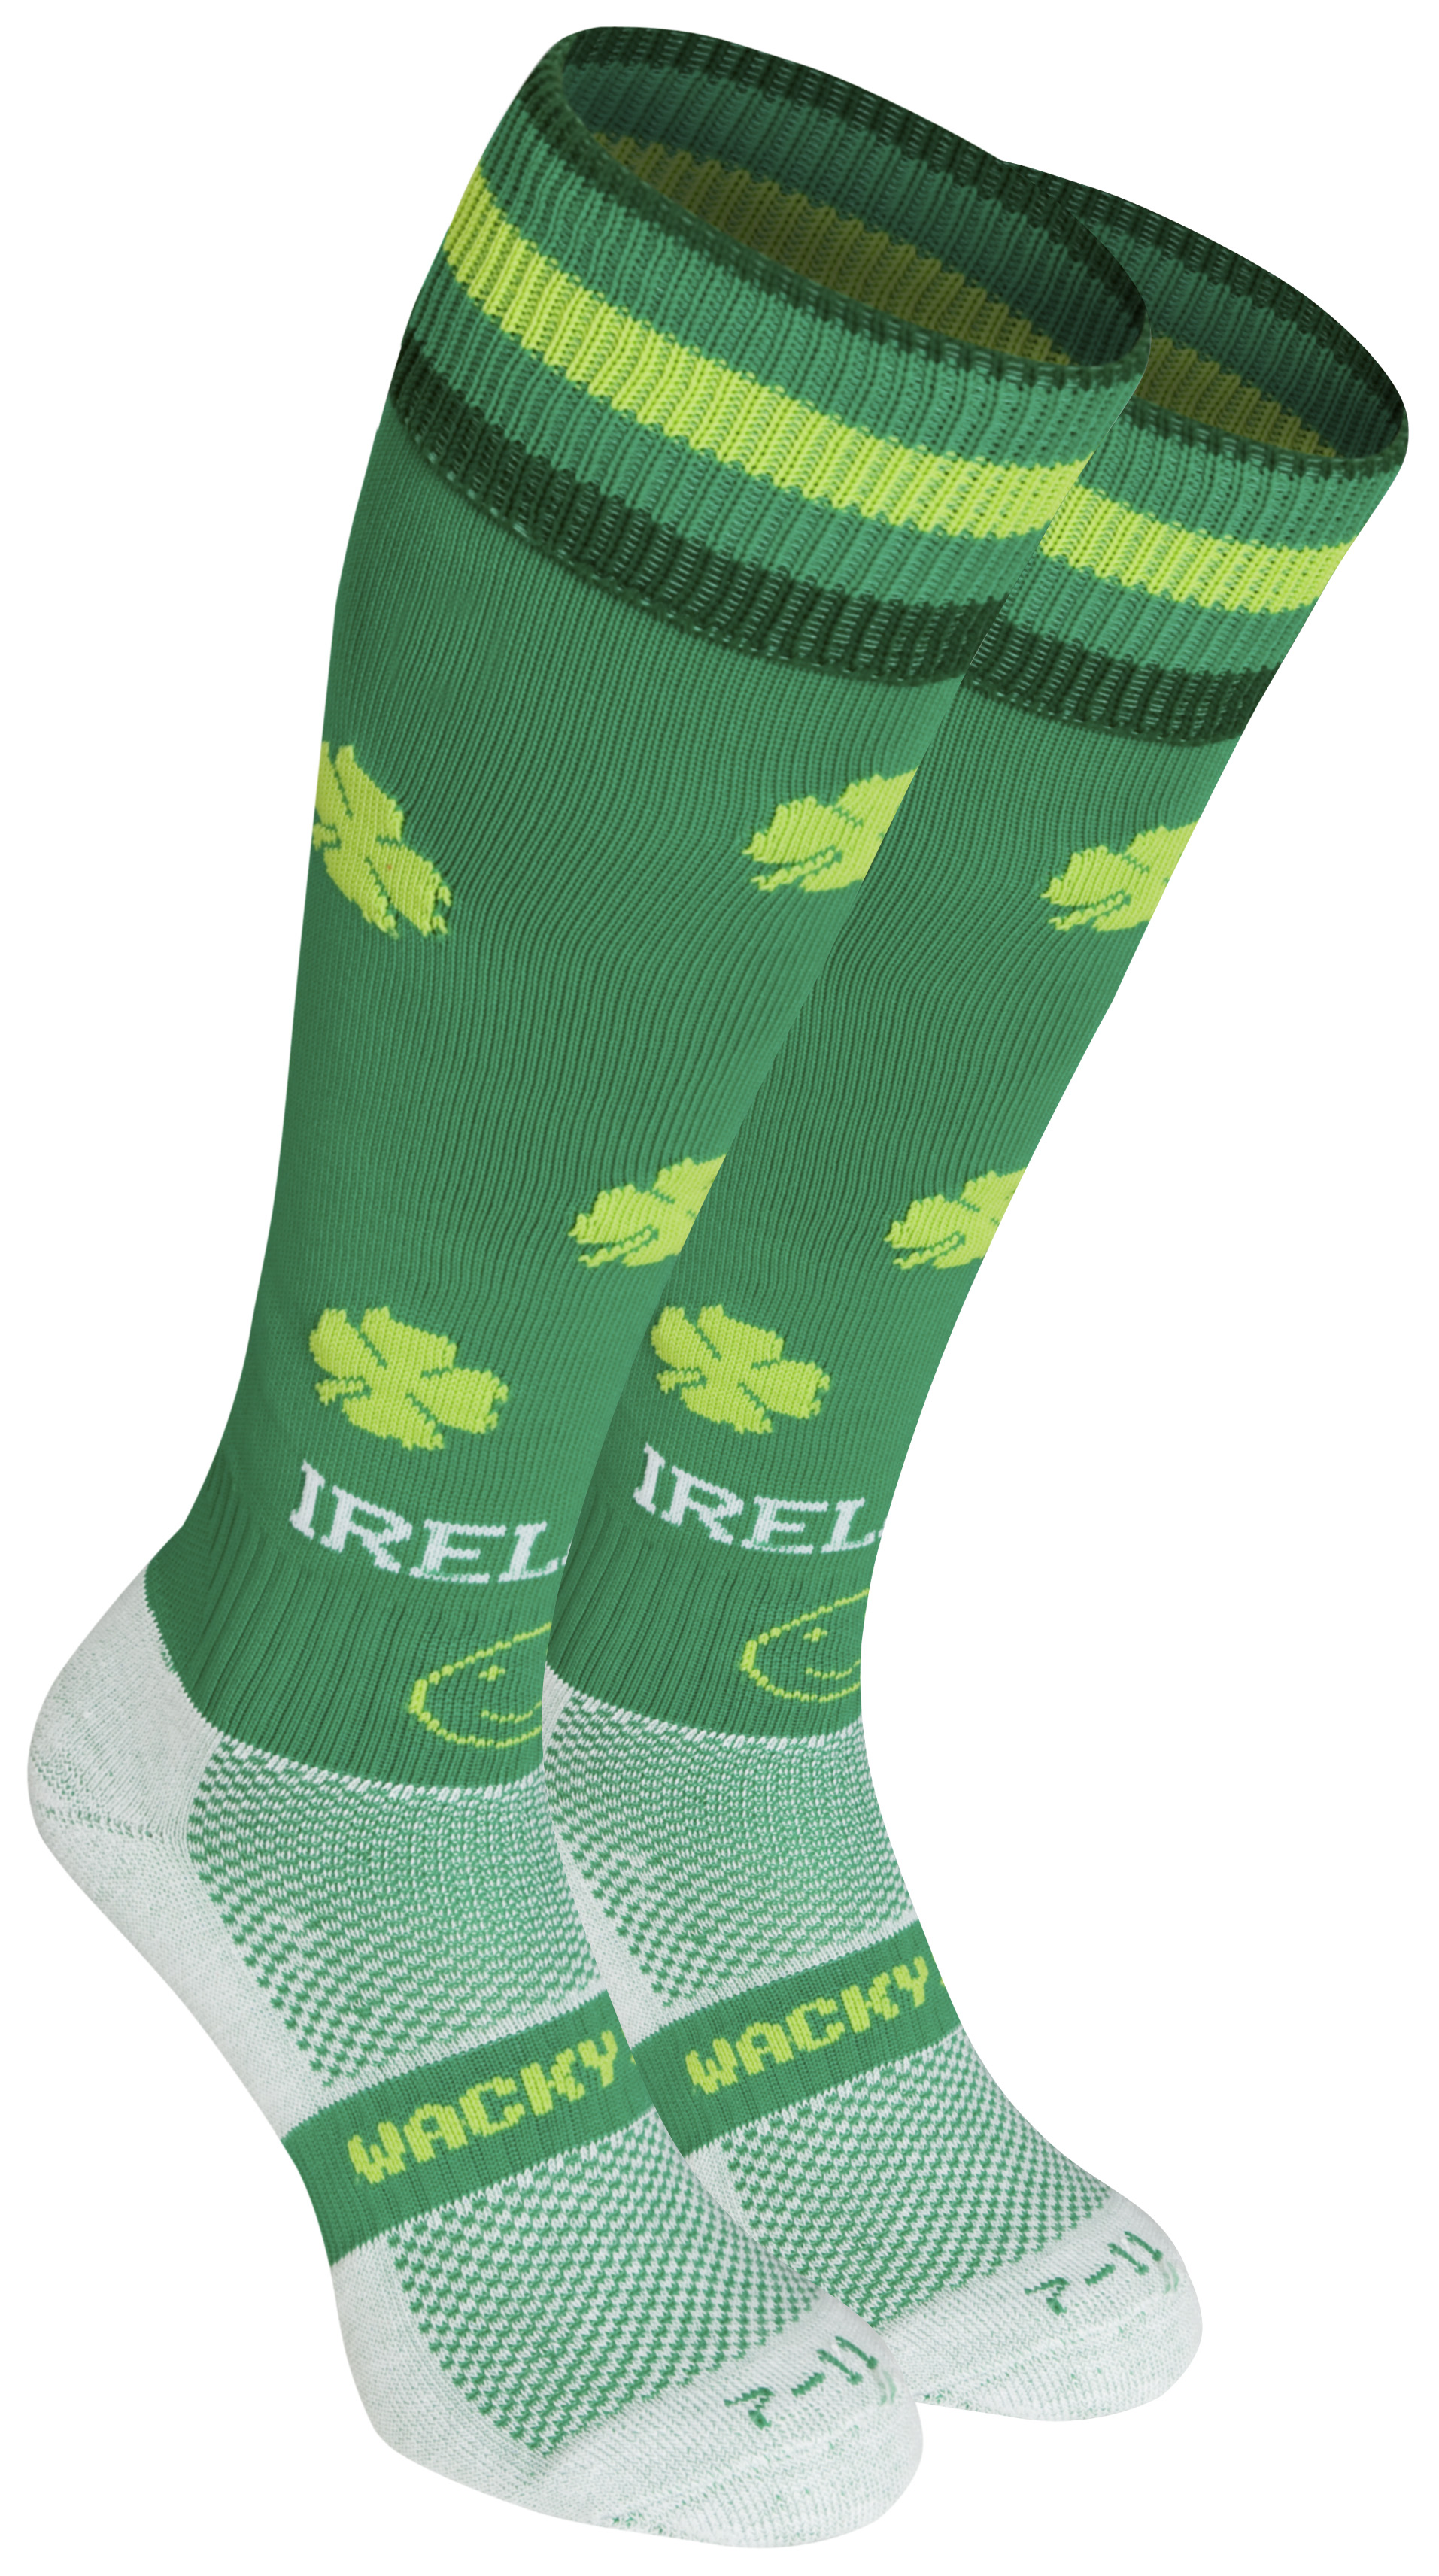 WackySox Ireland Socks - Green - Size 12-14